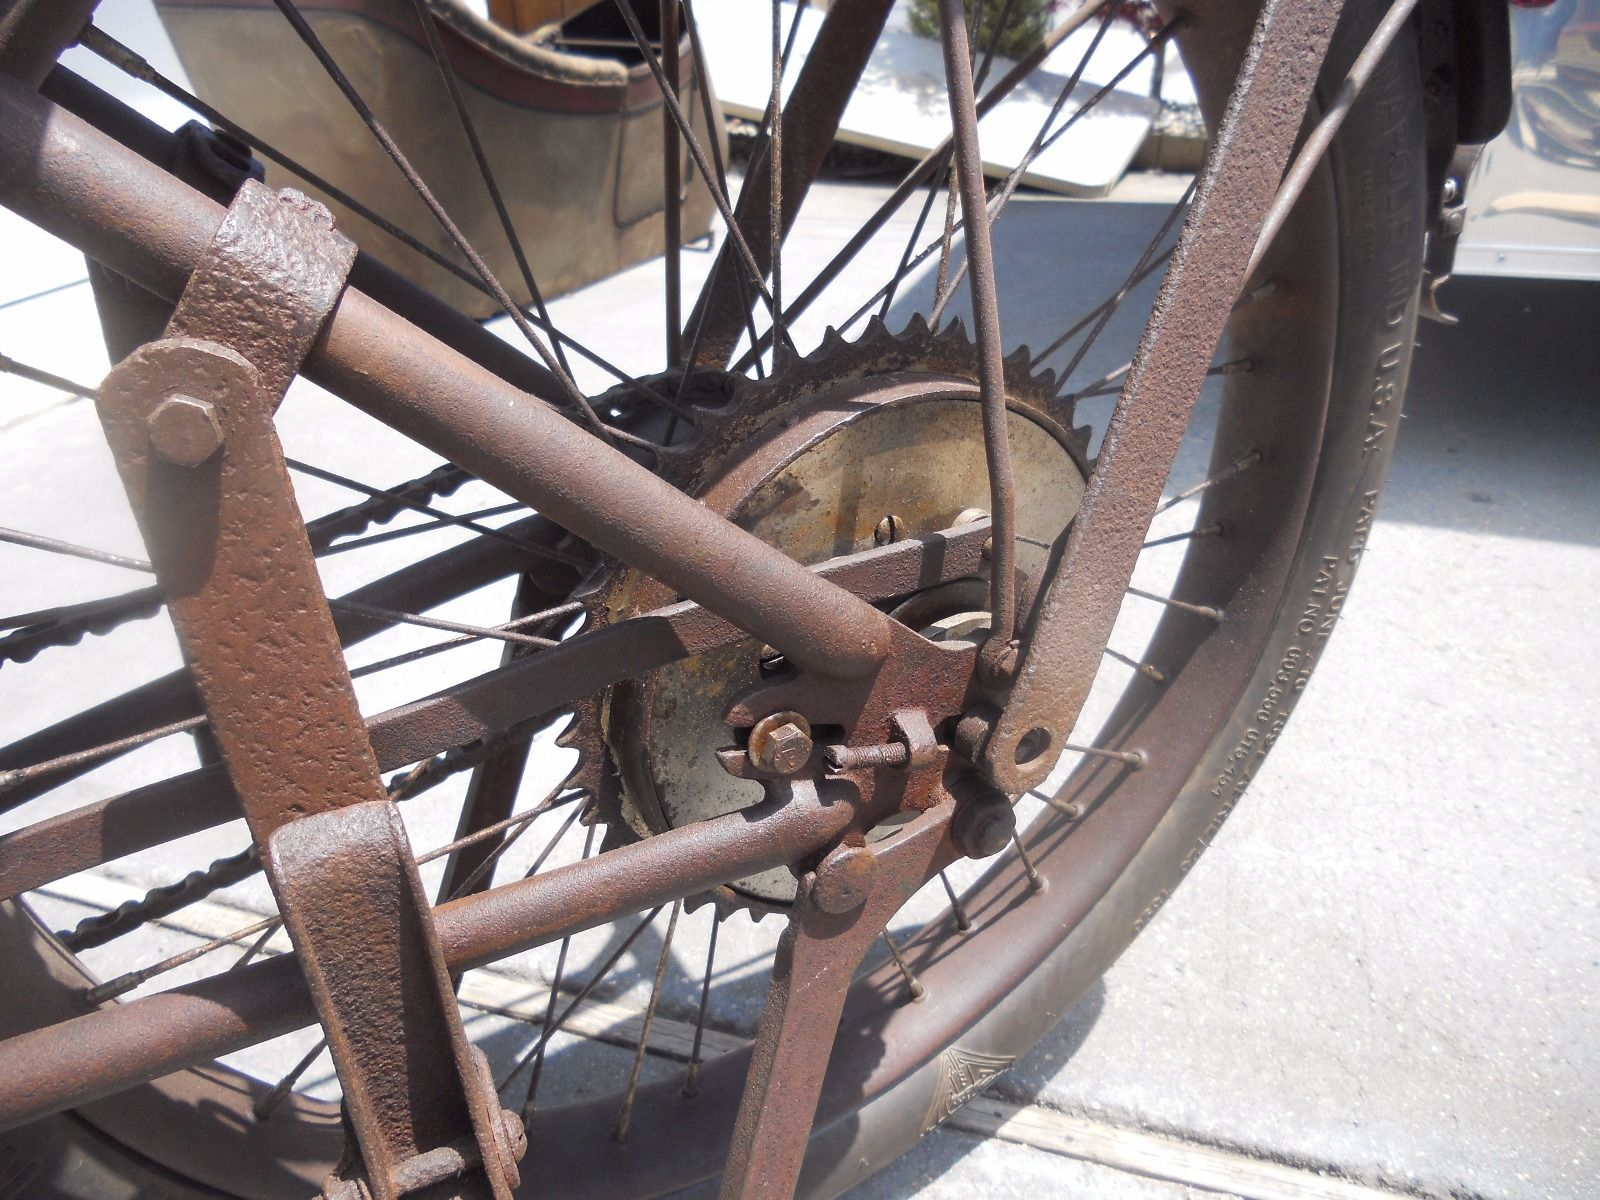 The engineering of early Harley-Davidson motorcycles clearly shows their bicycle origins.